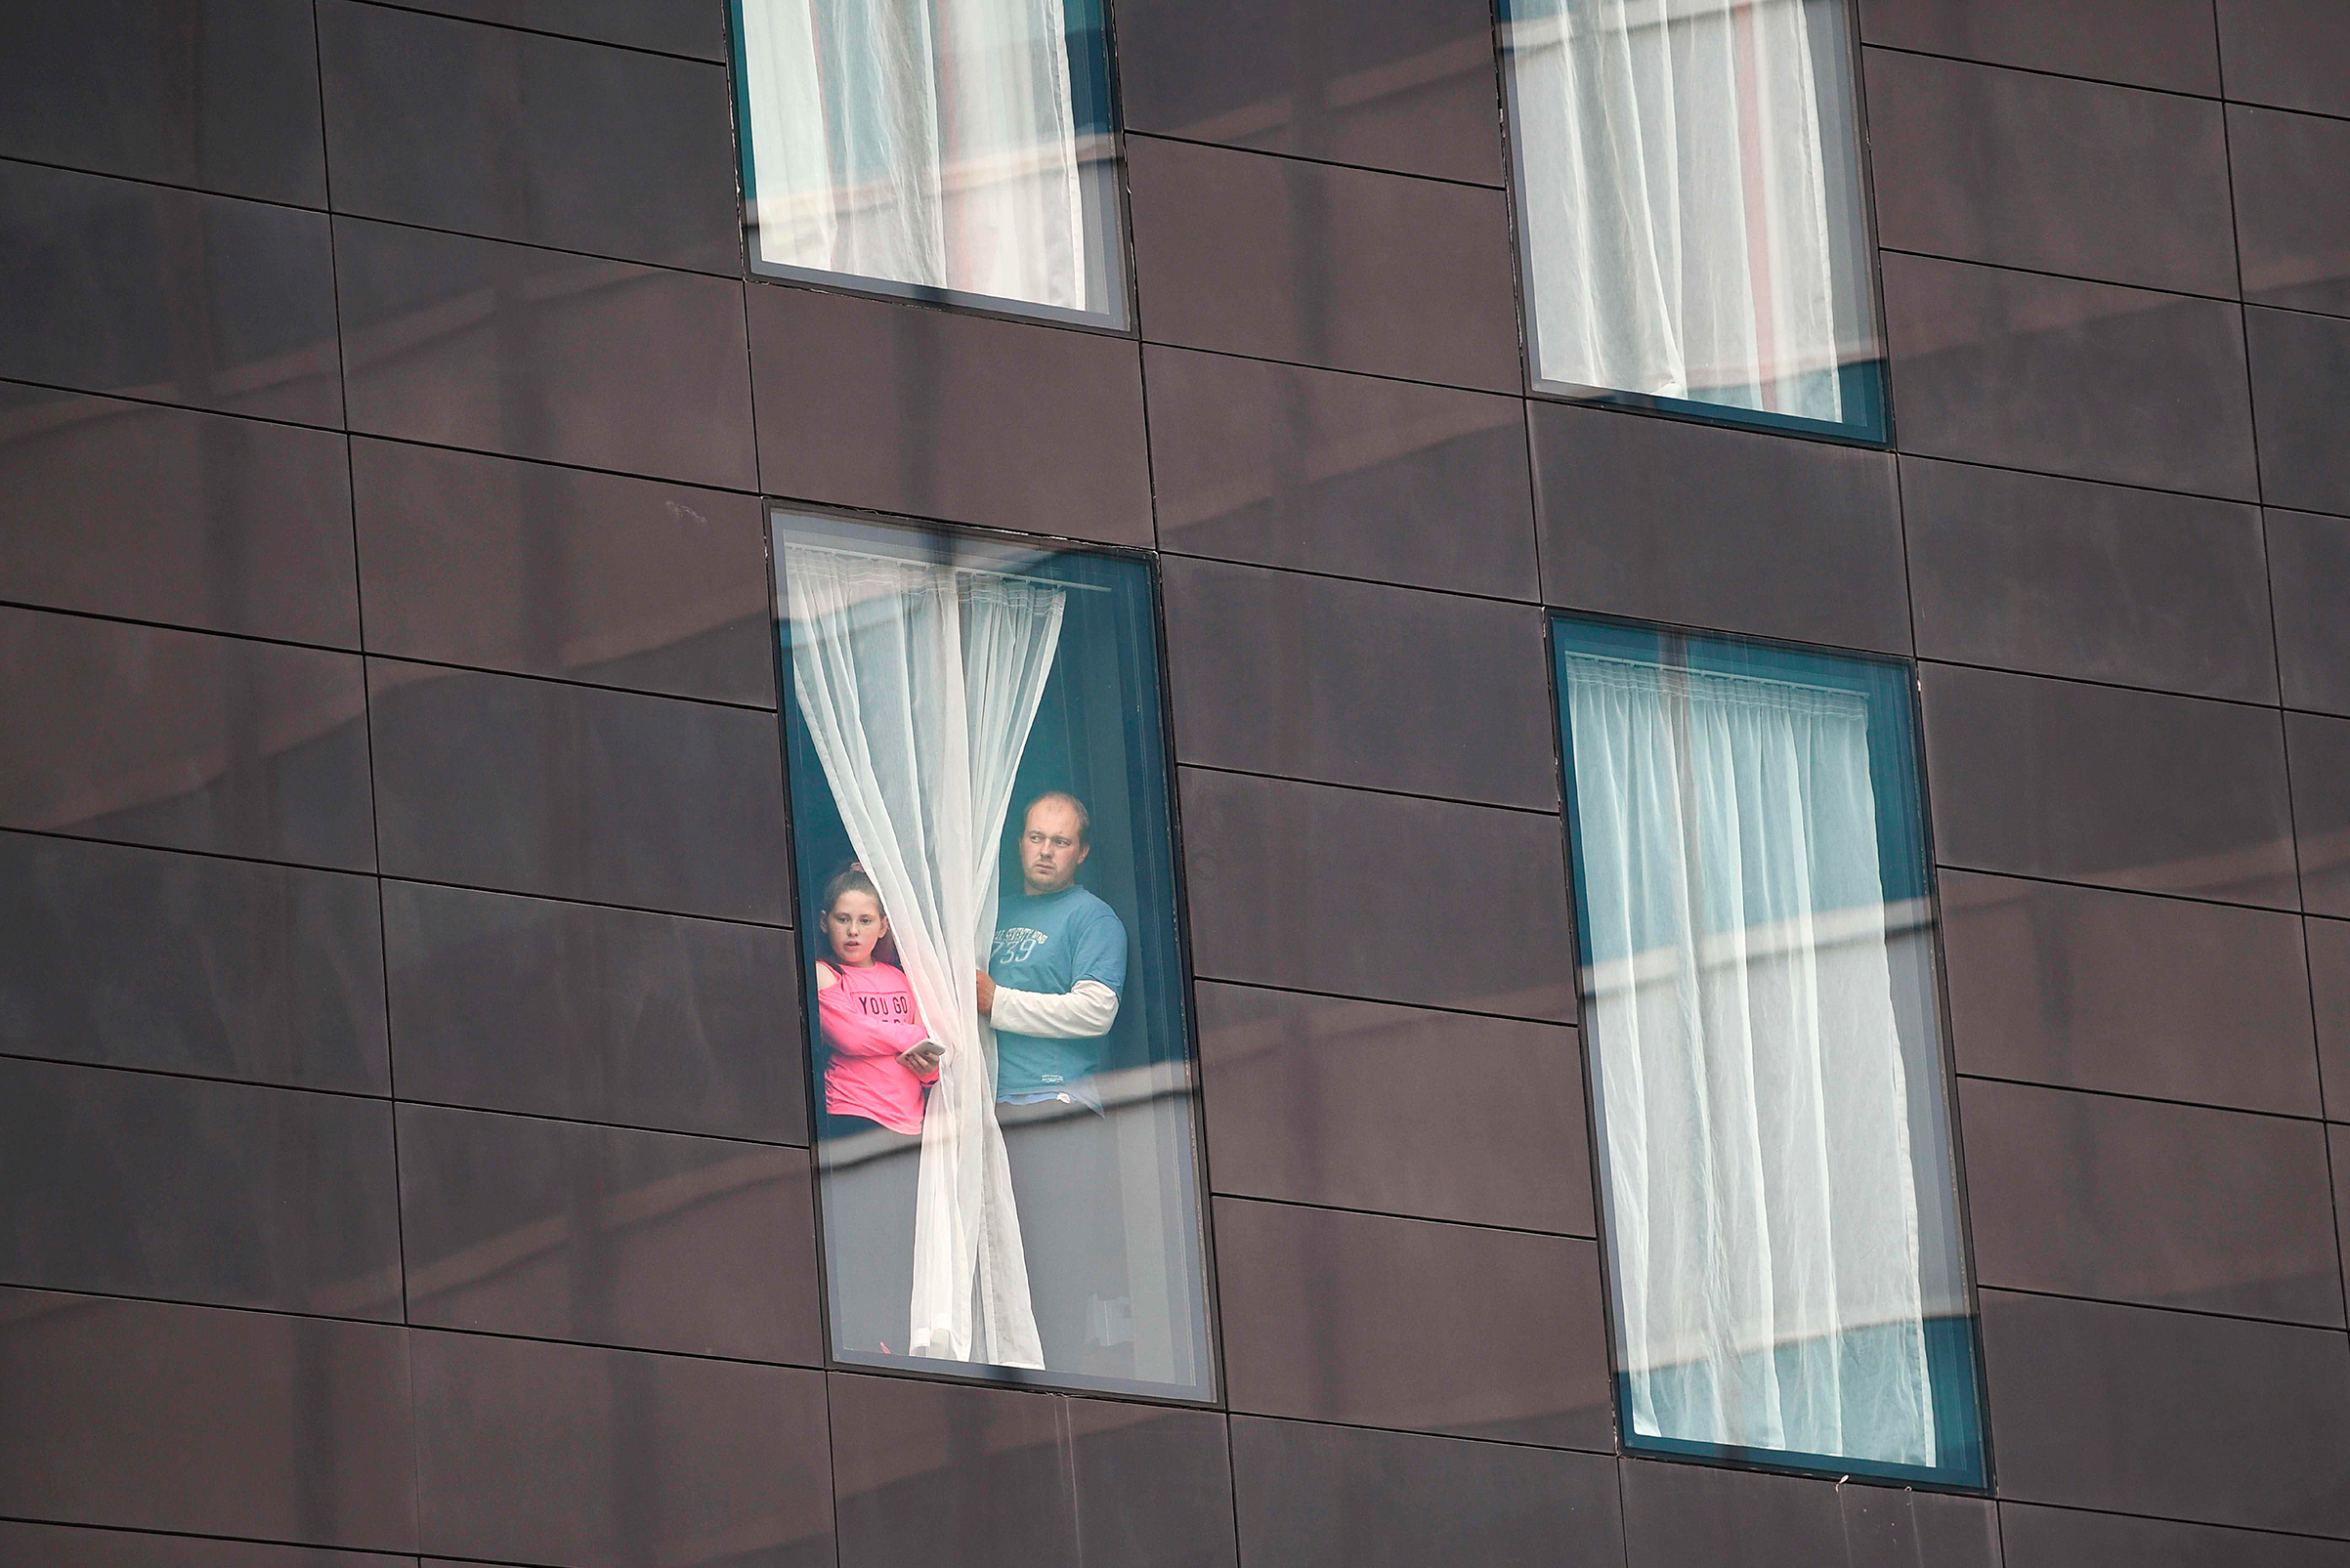 People affected by the May 22 terrorist attack in Manchester looked out from a hotel window